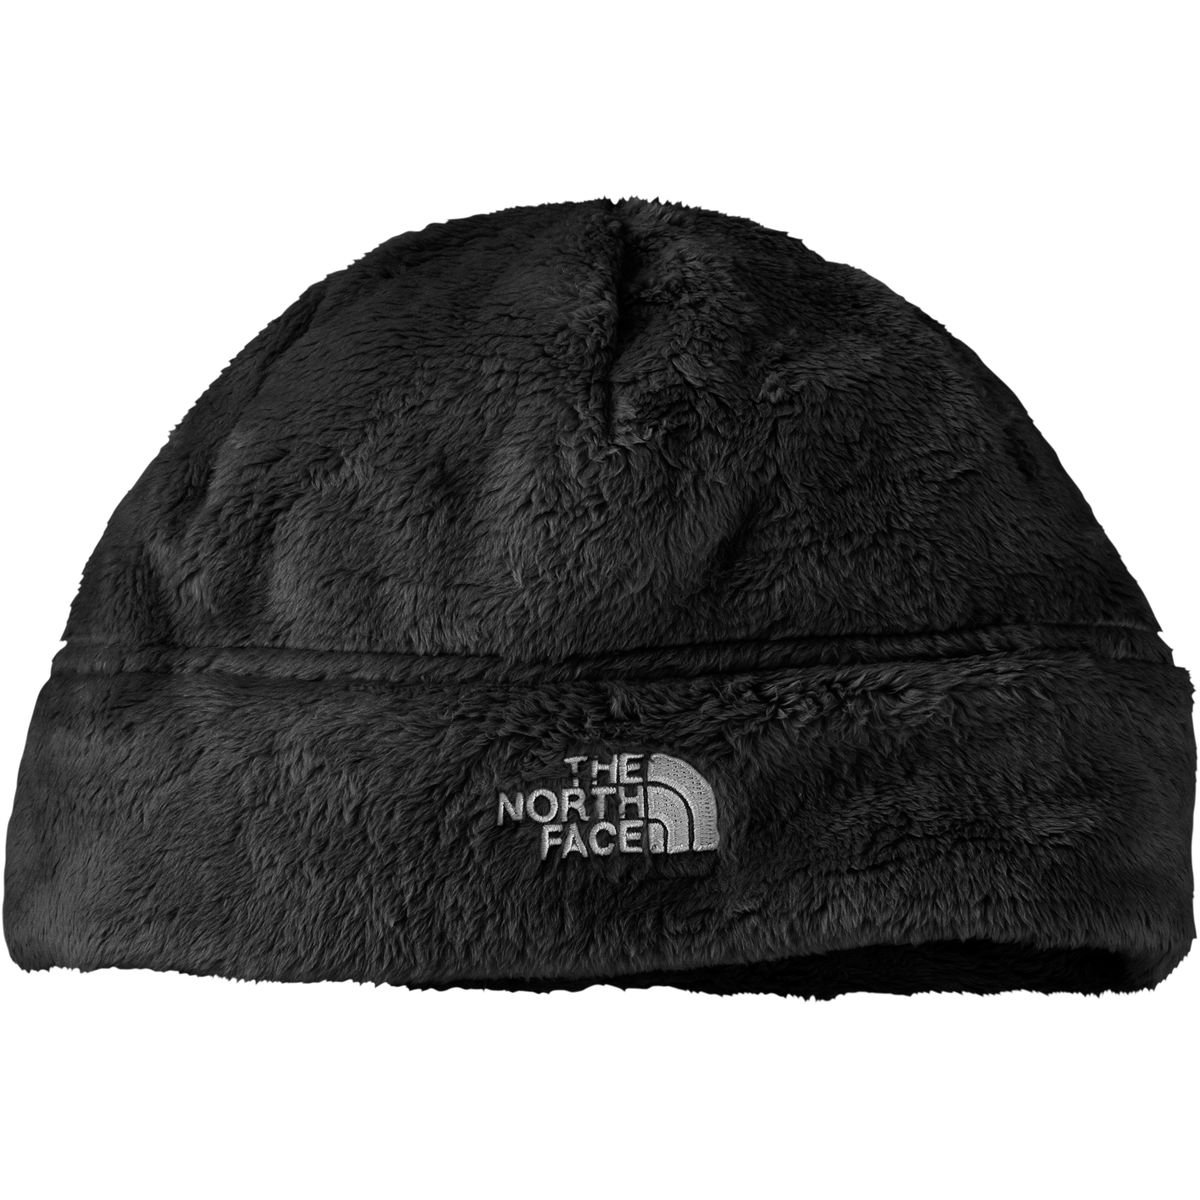 North Face Denali Thermal Beanie Girl's TNF Black S The North Face The North Face Inc AV6T-JK3-S